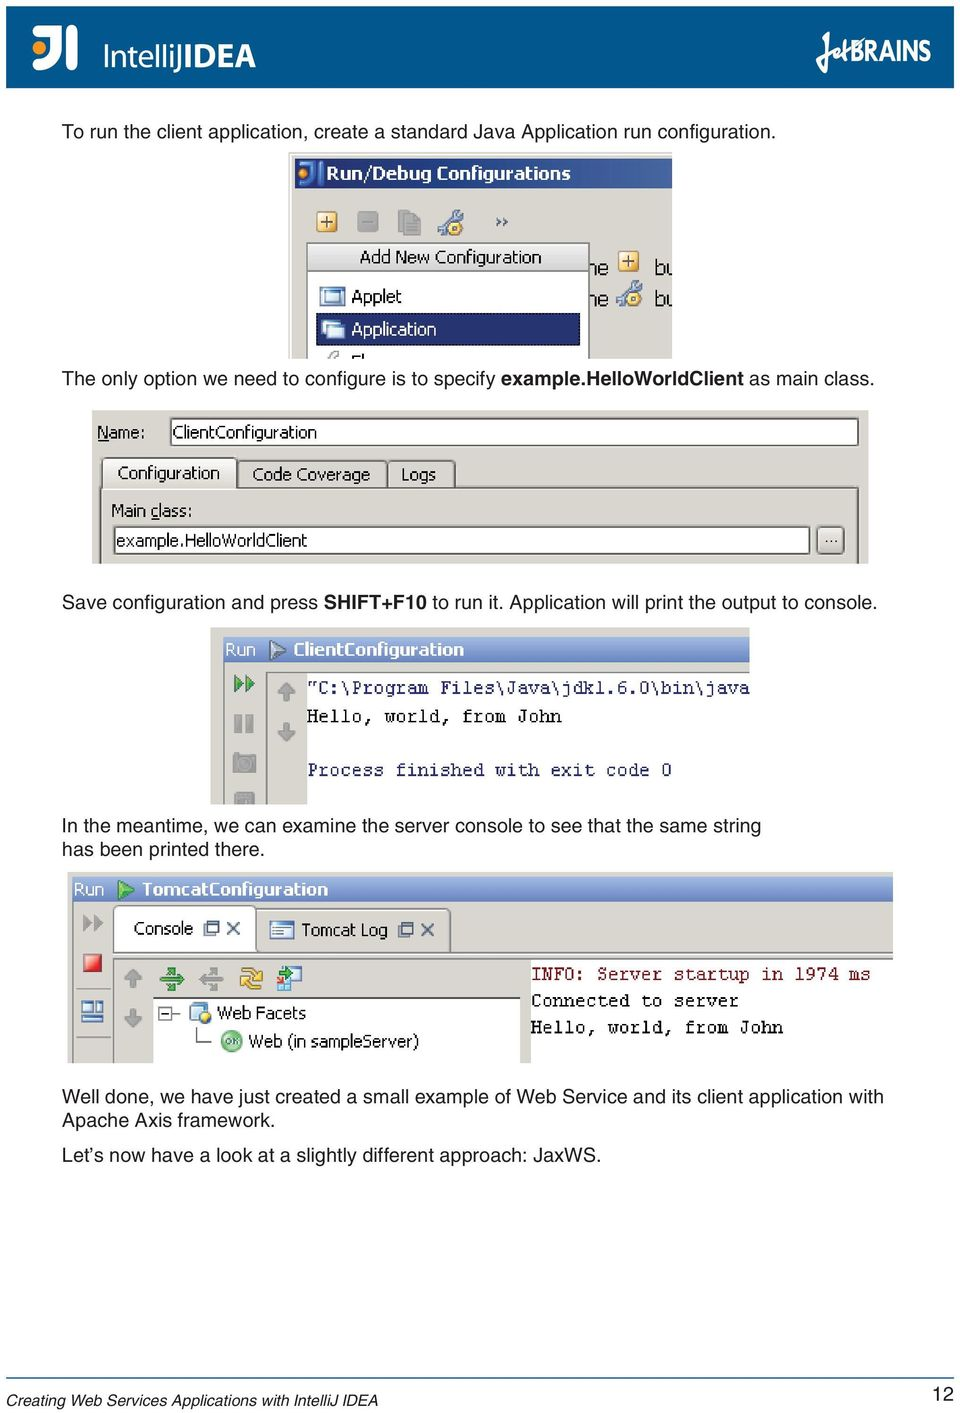 Creating Web Services Applications with IntelliJ IDEA - PDF